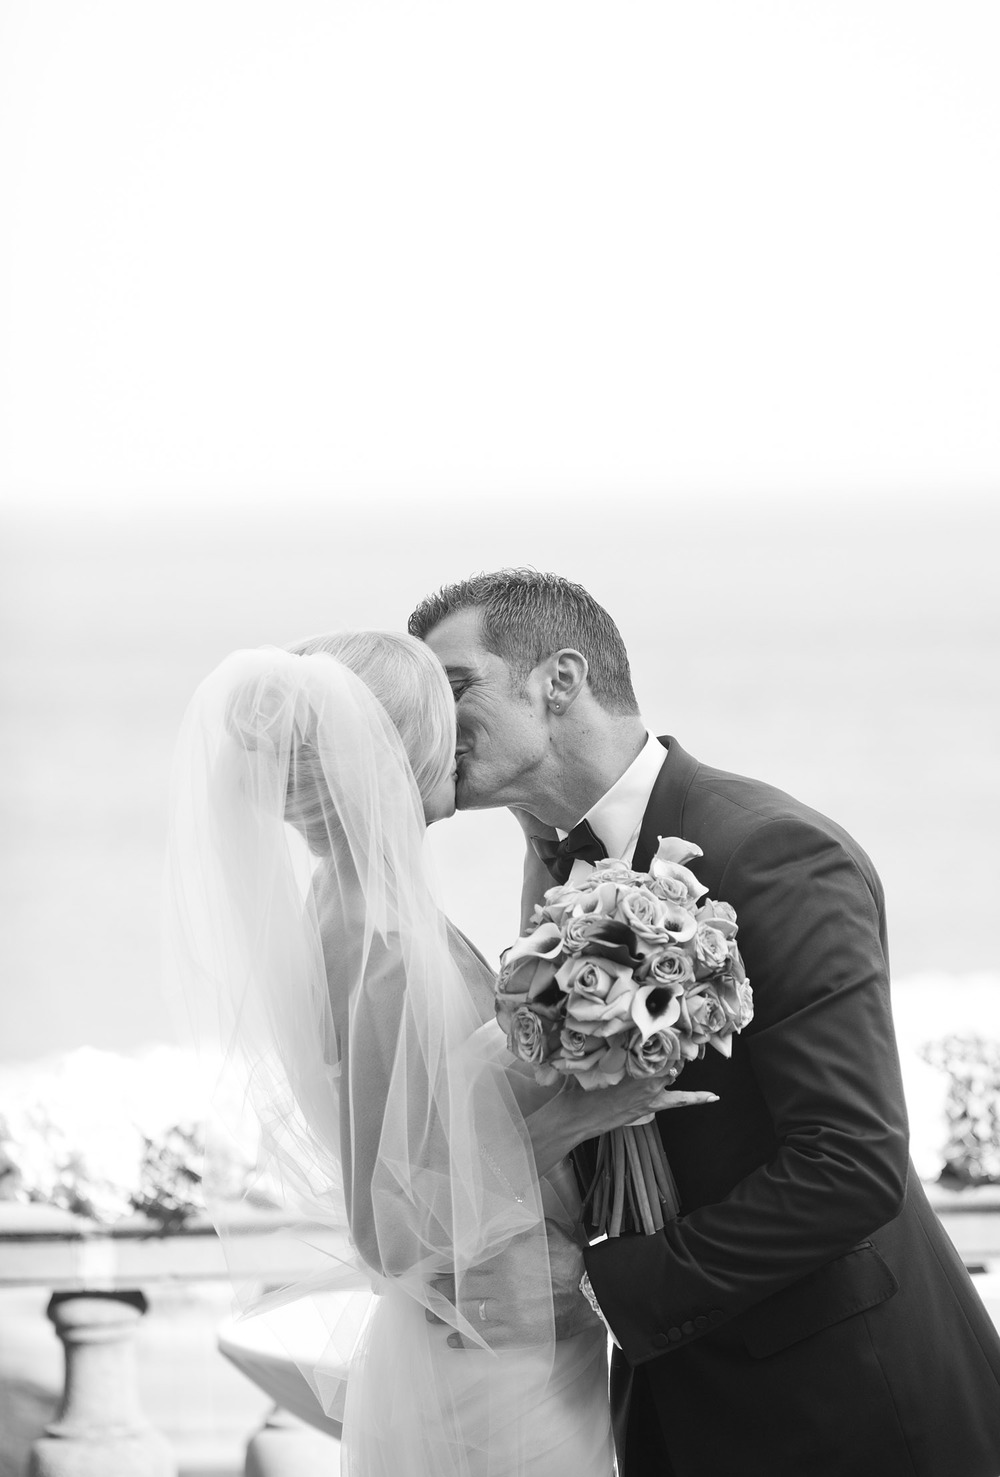 the couples has their first kiss at the destination Italian wedding at the Villa Terrace - a favorite wedding venue of destination wedding photographer lexia frank, who is a film photographer for luxury weddings